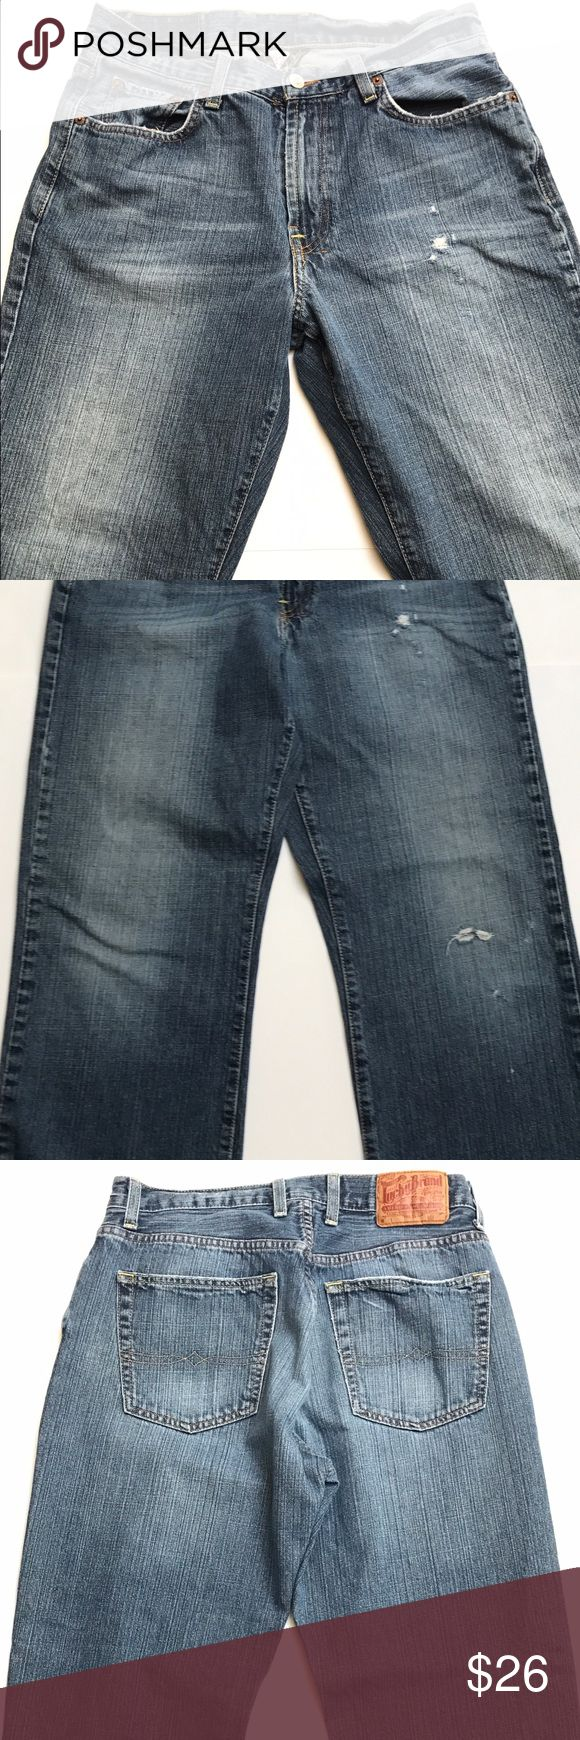 "Lucky Brand Gene Montesano Classic Fit Dungarees Lucky Brand Gene Montesano Classic Fit Dungarees Men's Jeans 32 X 29 Pre-owned but in good condition and no stains from a smoke free home. Rise: 10.5"" Lucky Brand Jeans Straight"